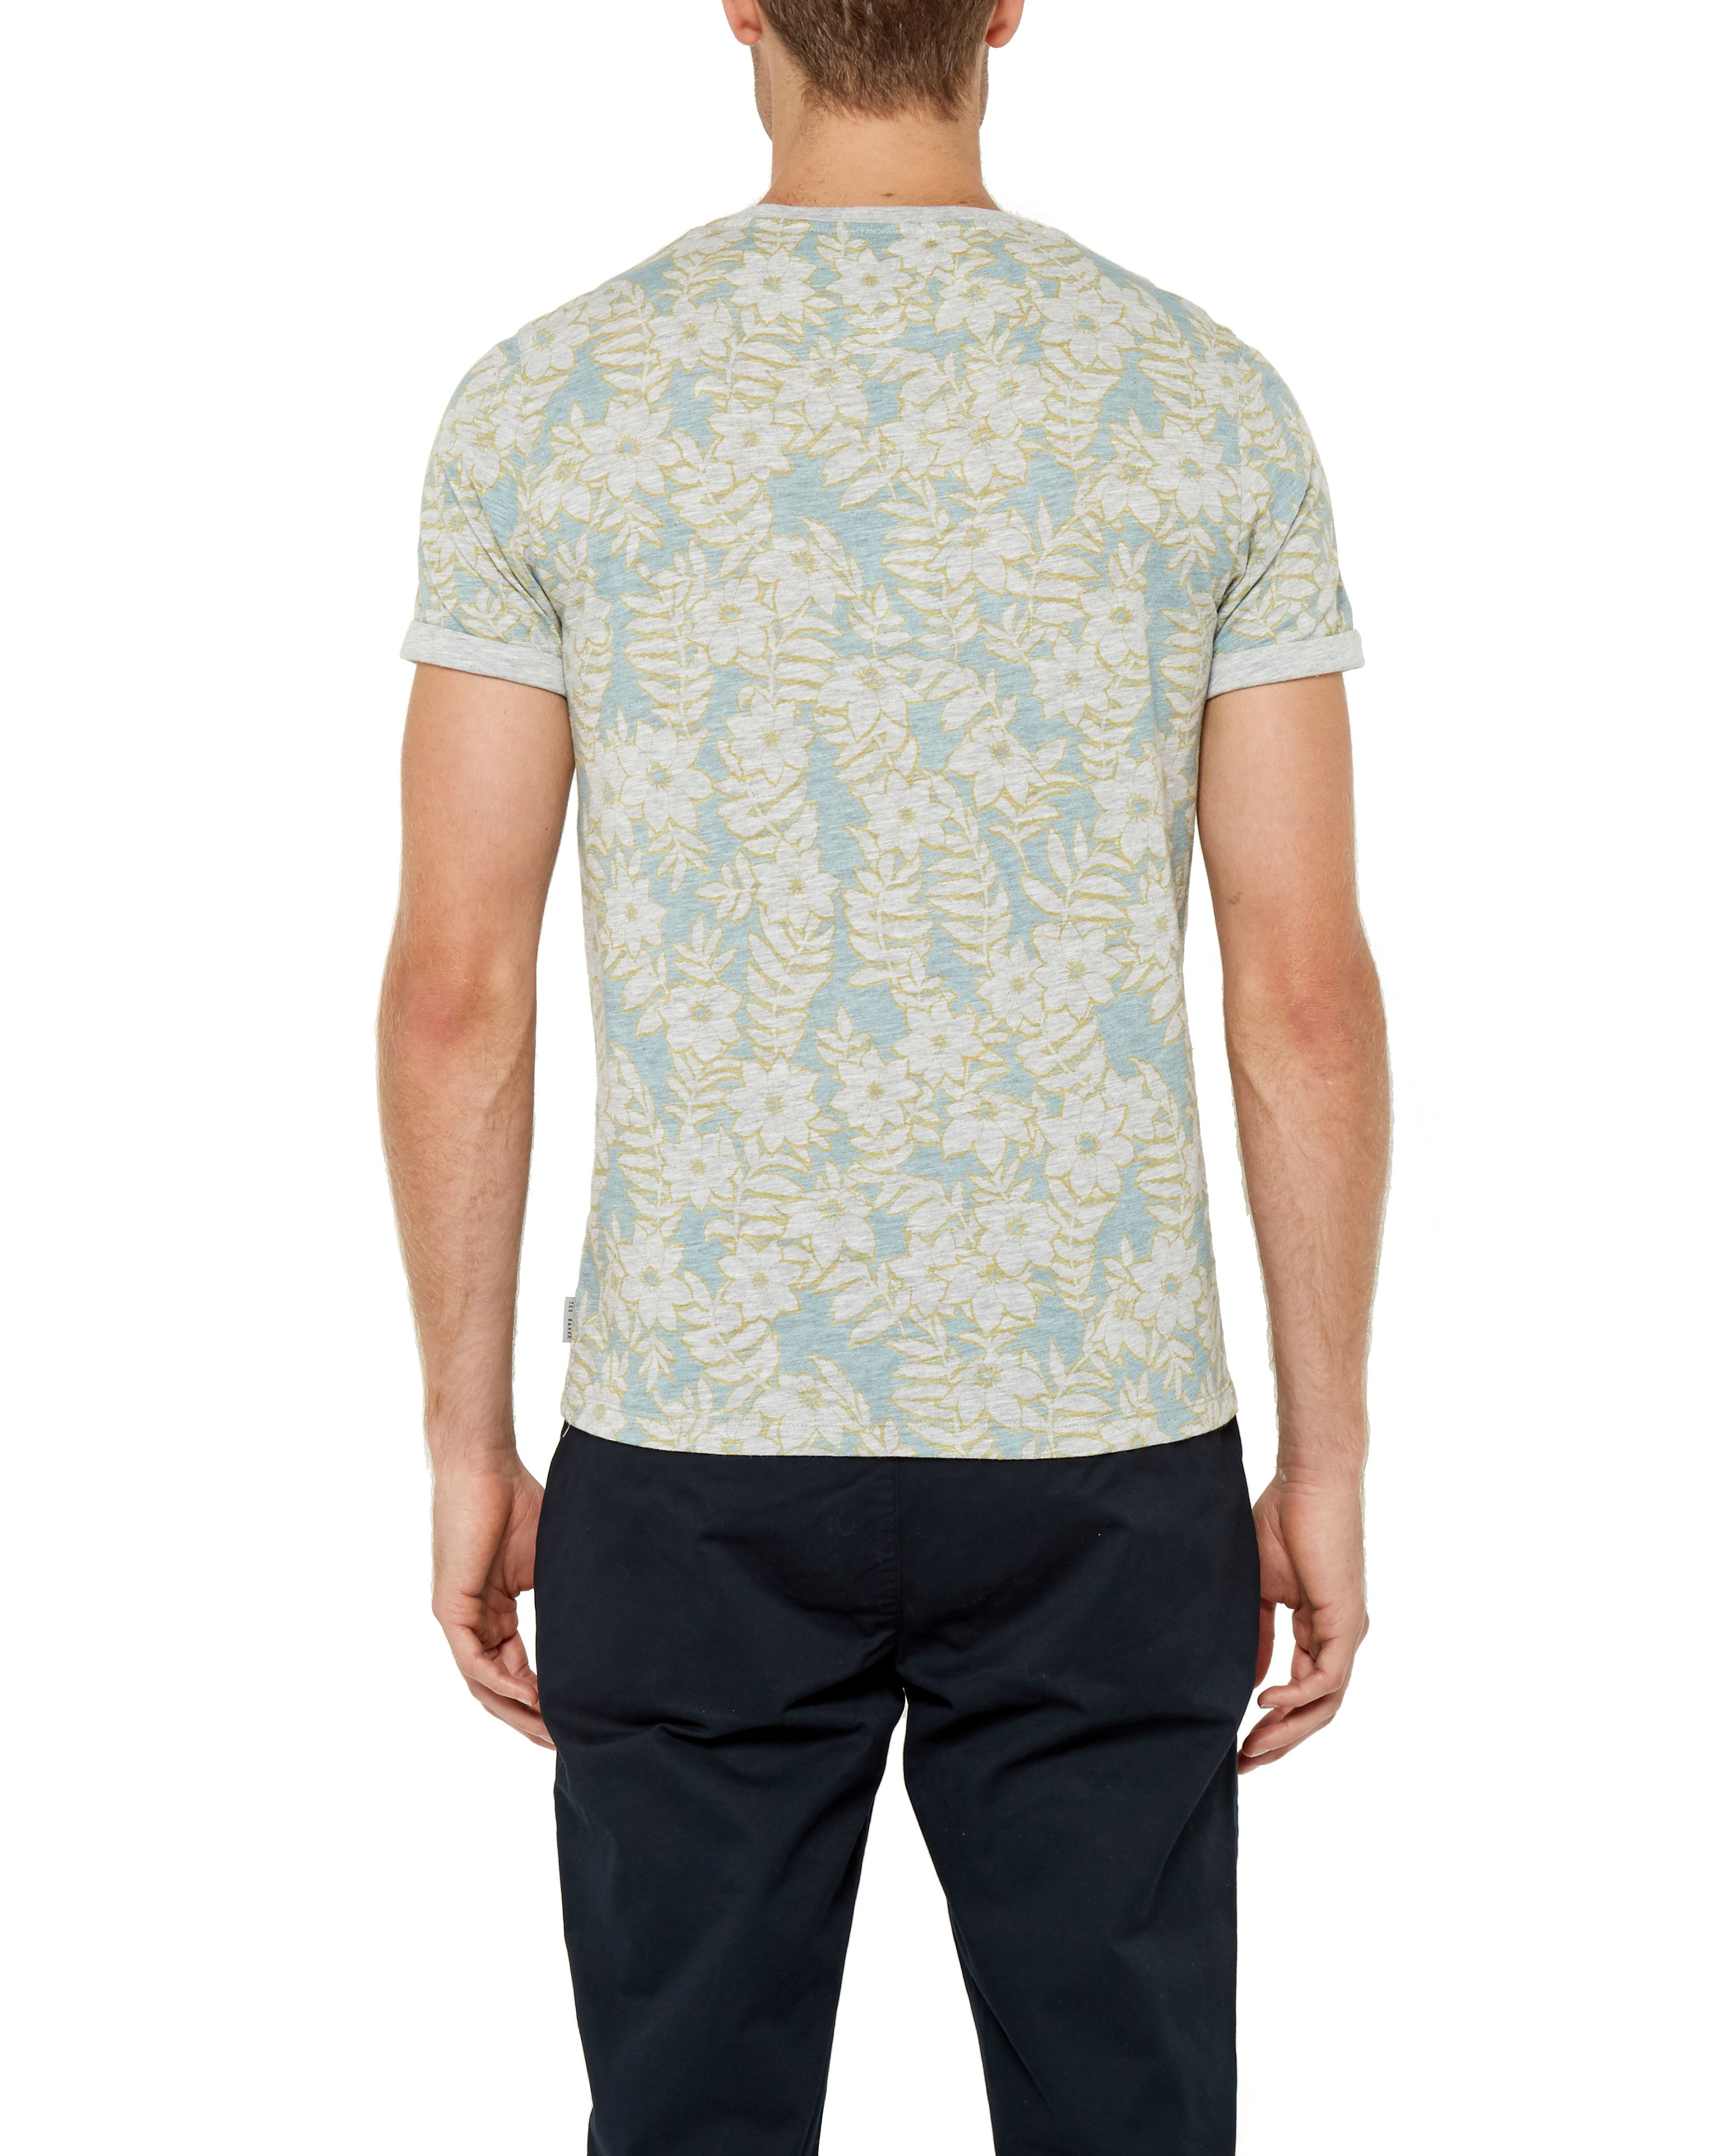 Ted baker rootz floral cotton t shirt in green for men lyst for Ted baker floral shirt